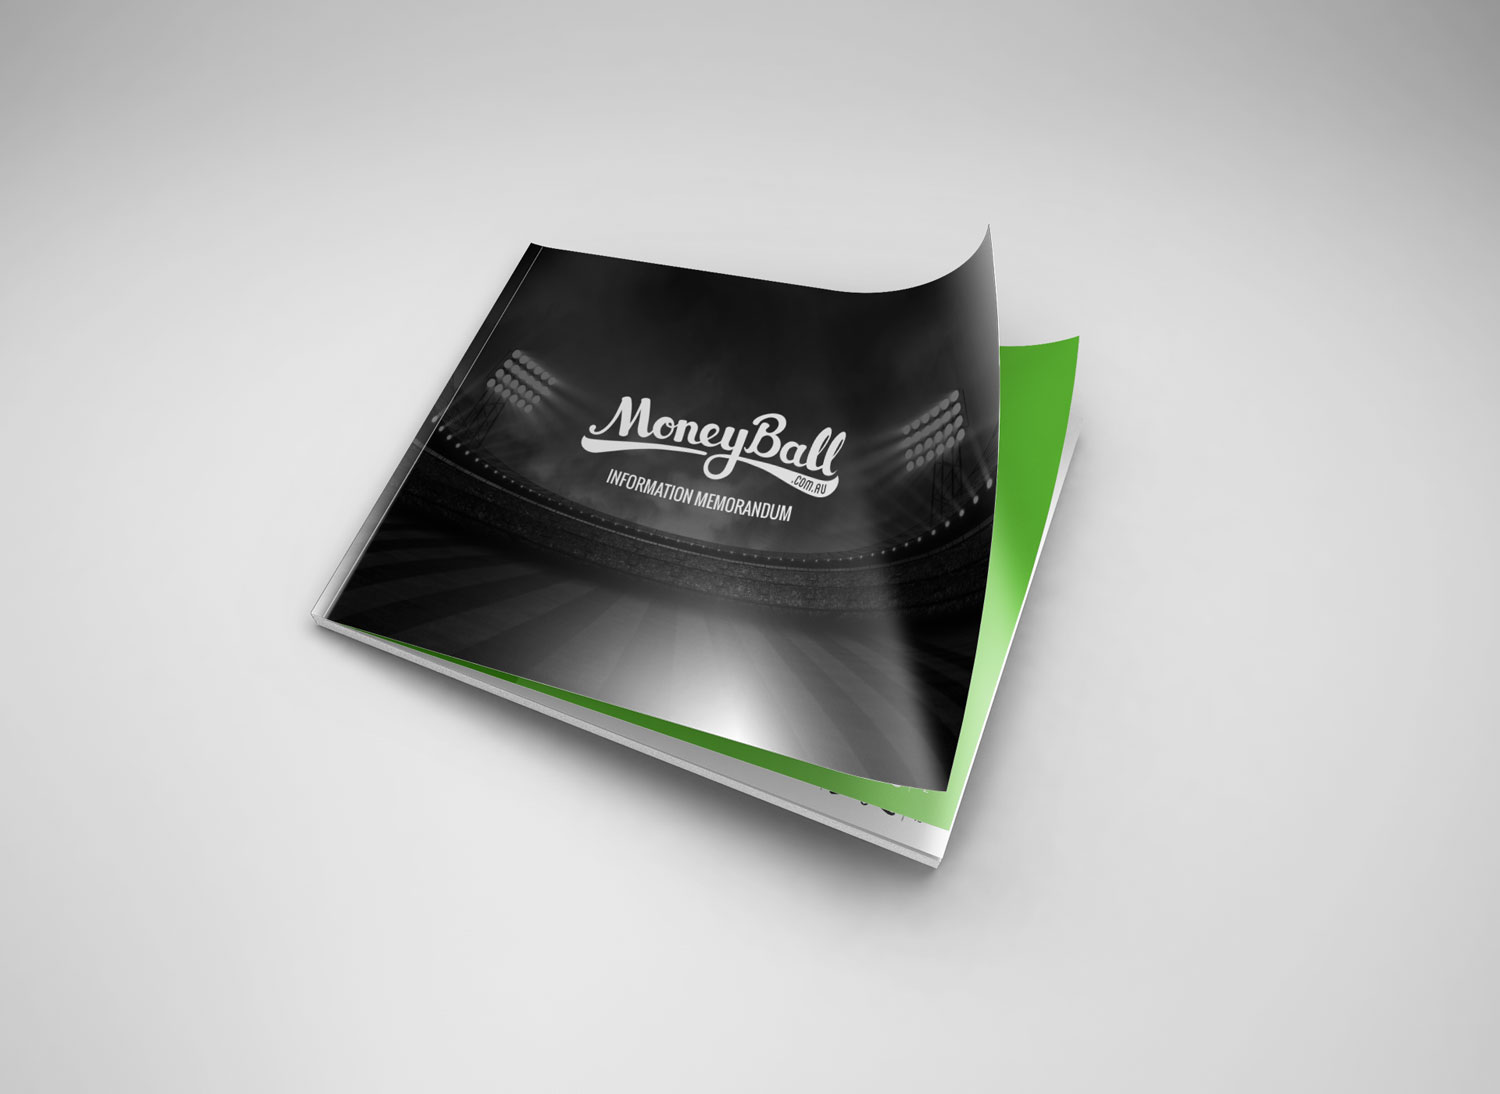 Moneyball investment document cover design